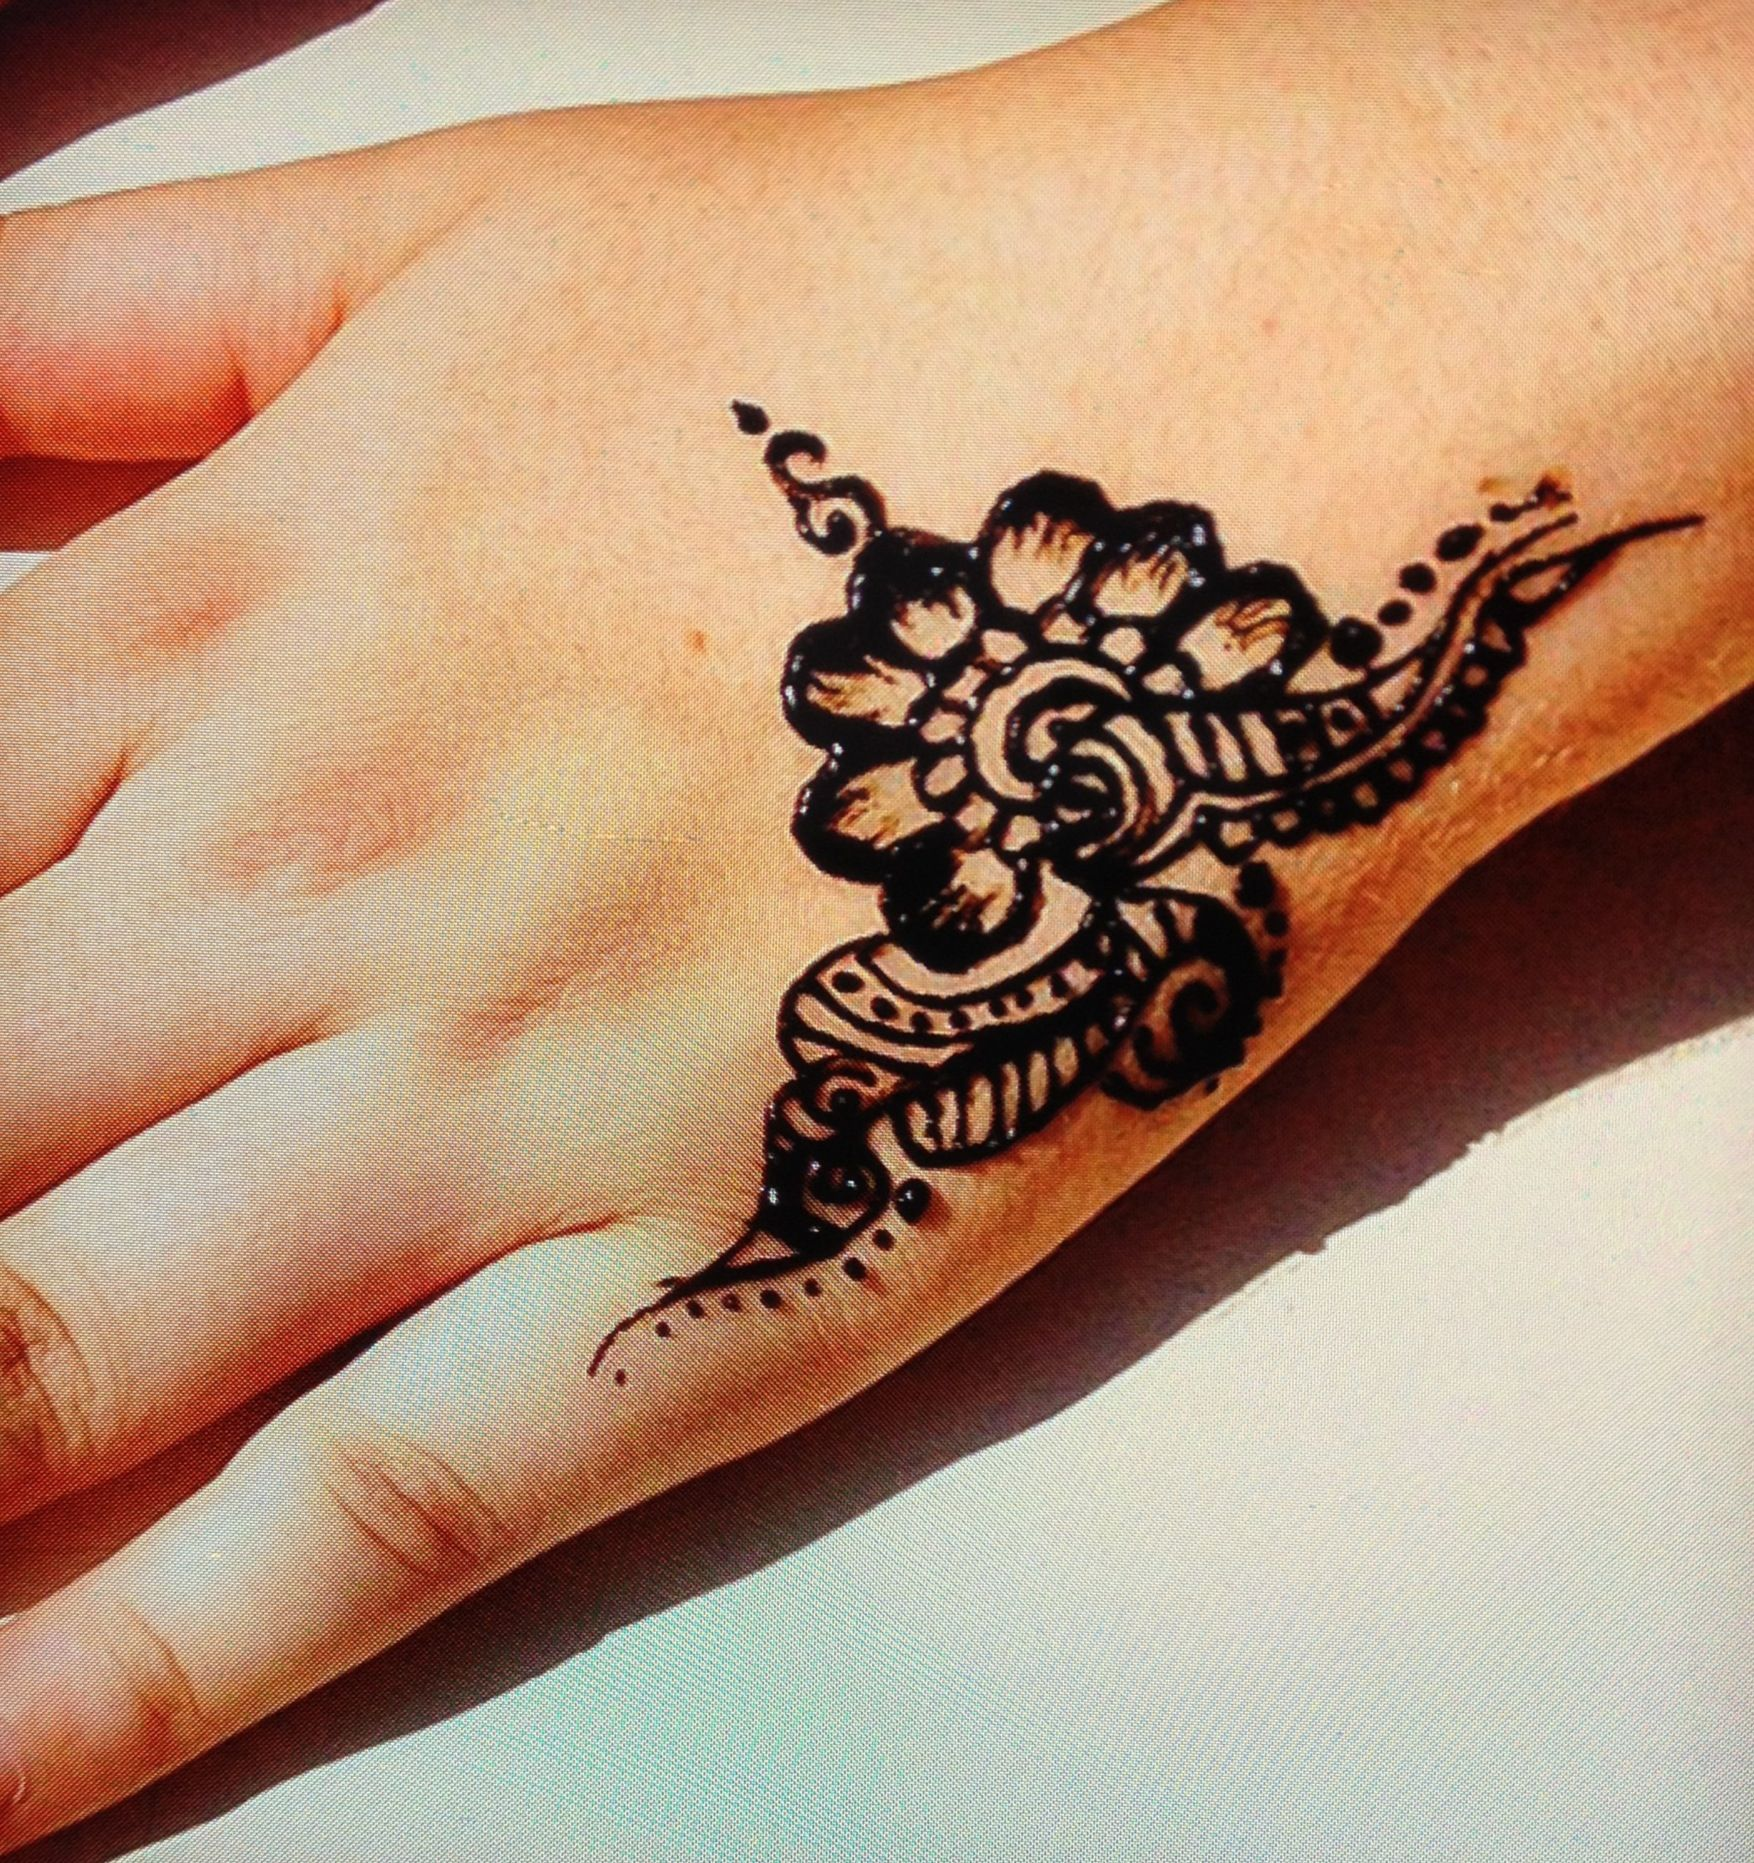 Simple tattoo ideas on wrist simple henna  inkspired  pinterest  simple henna hennas and mehndi